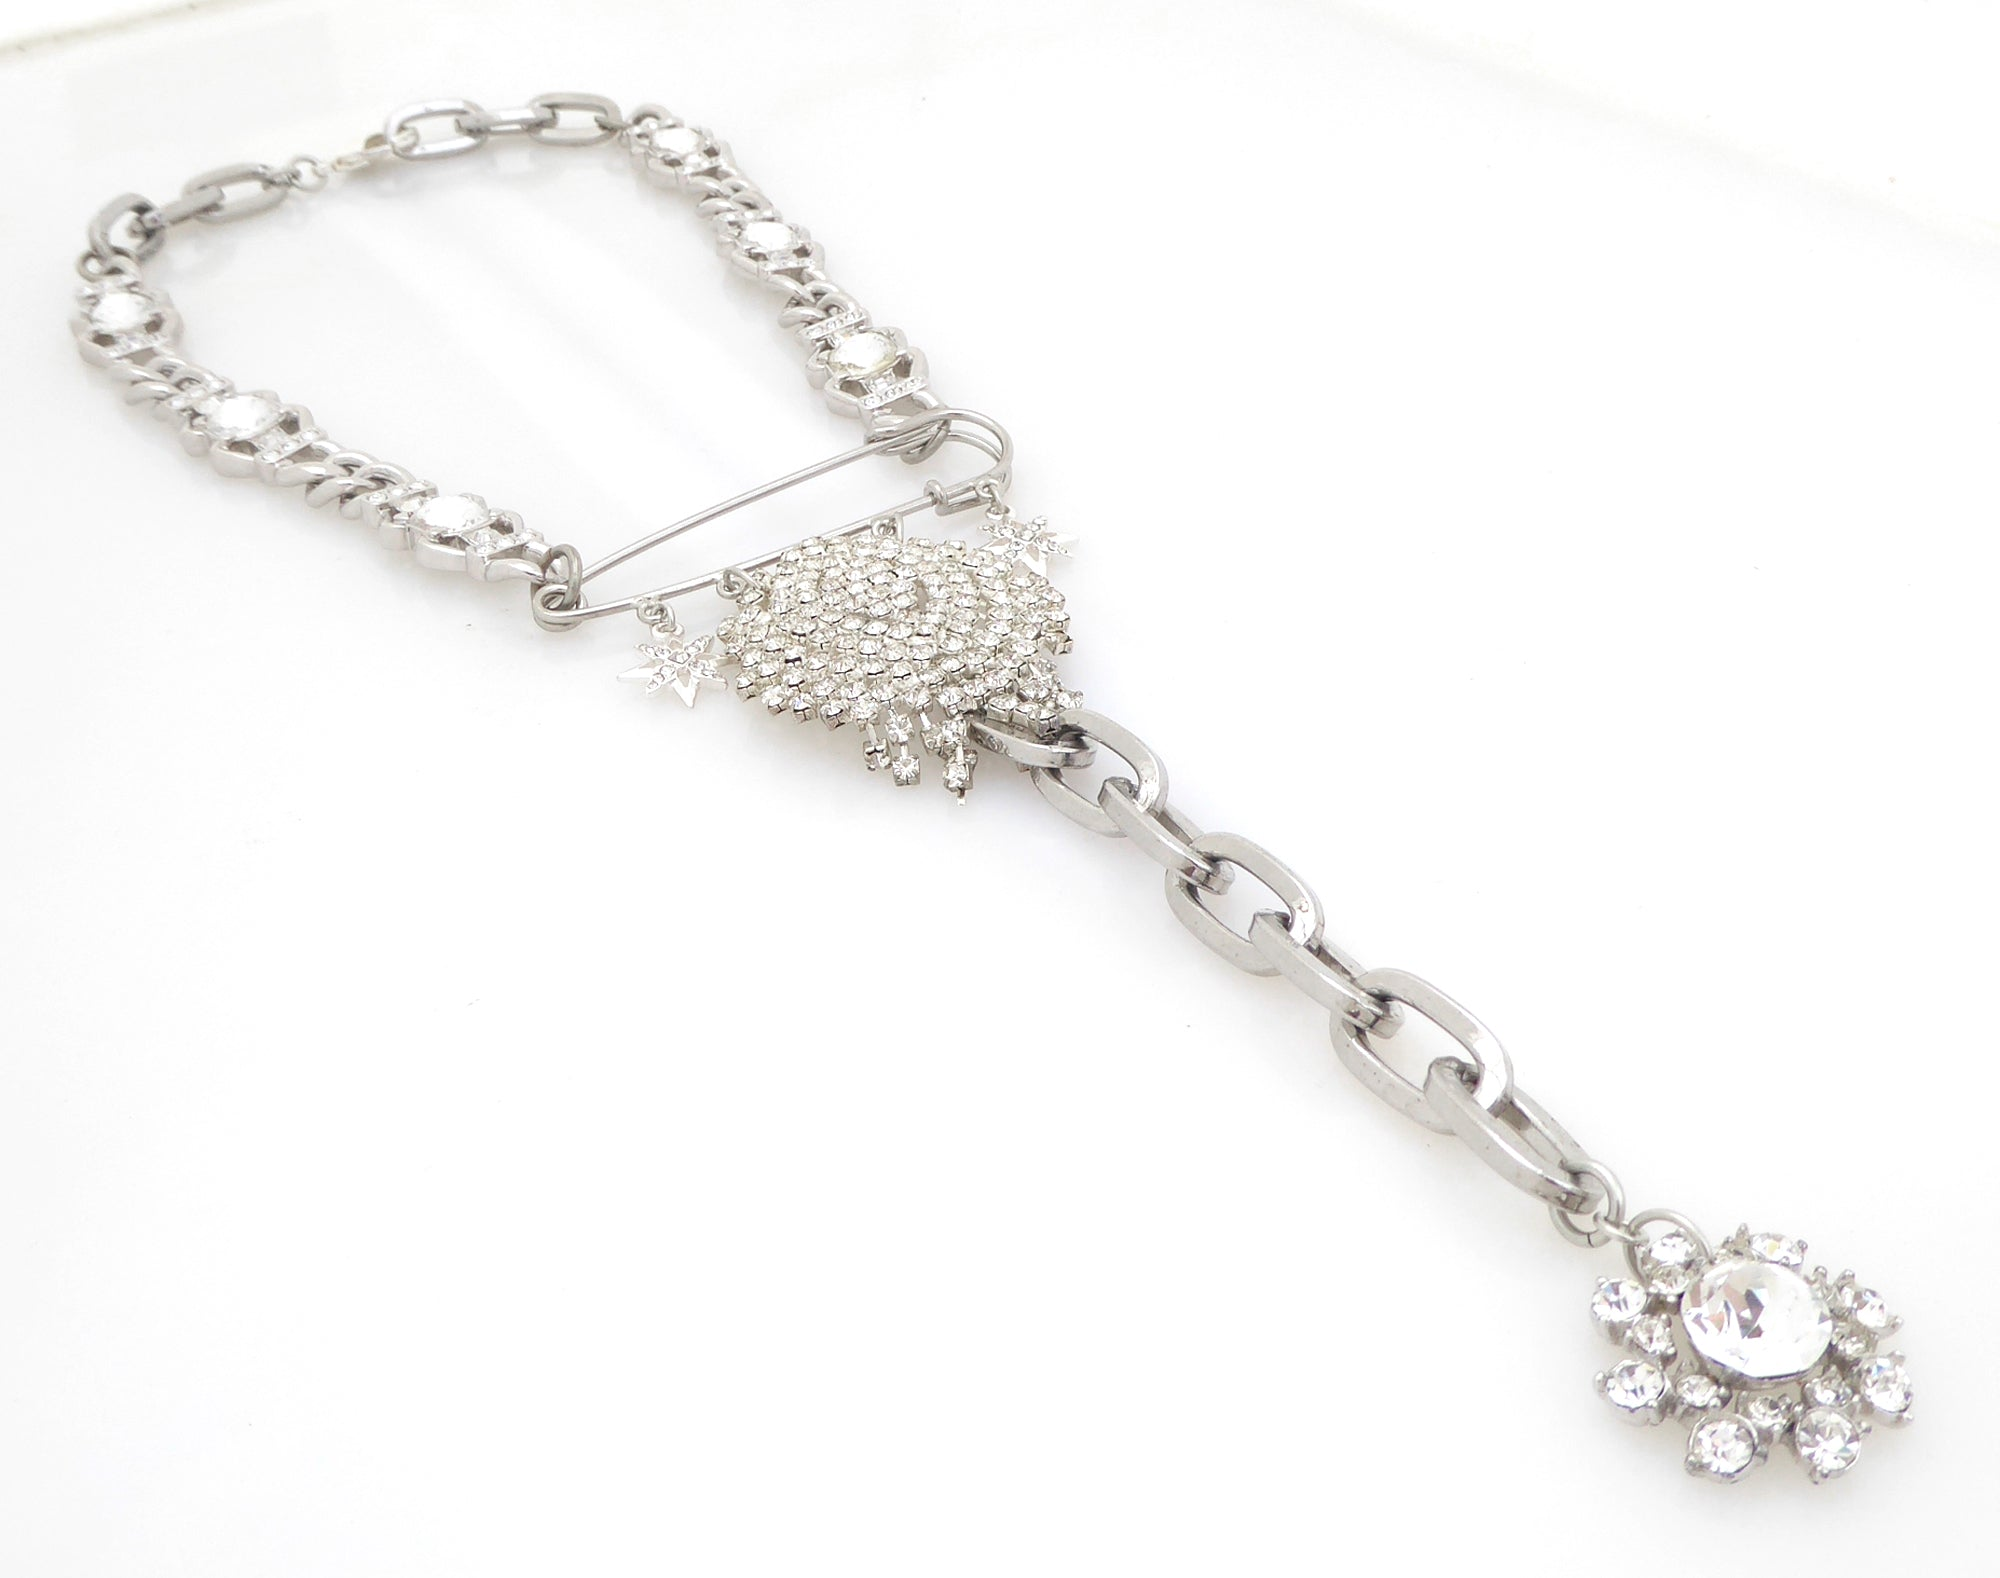 Vesperia necklace